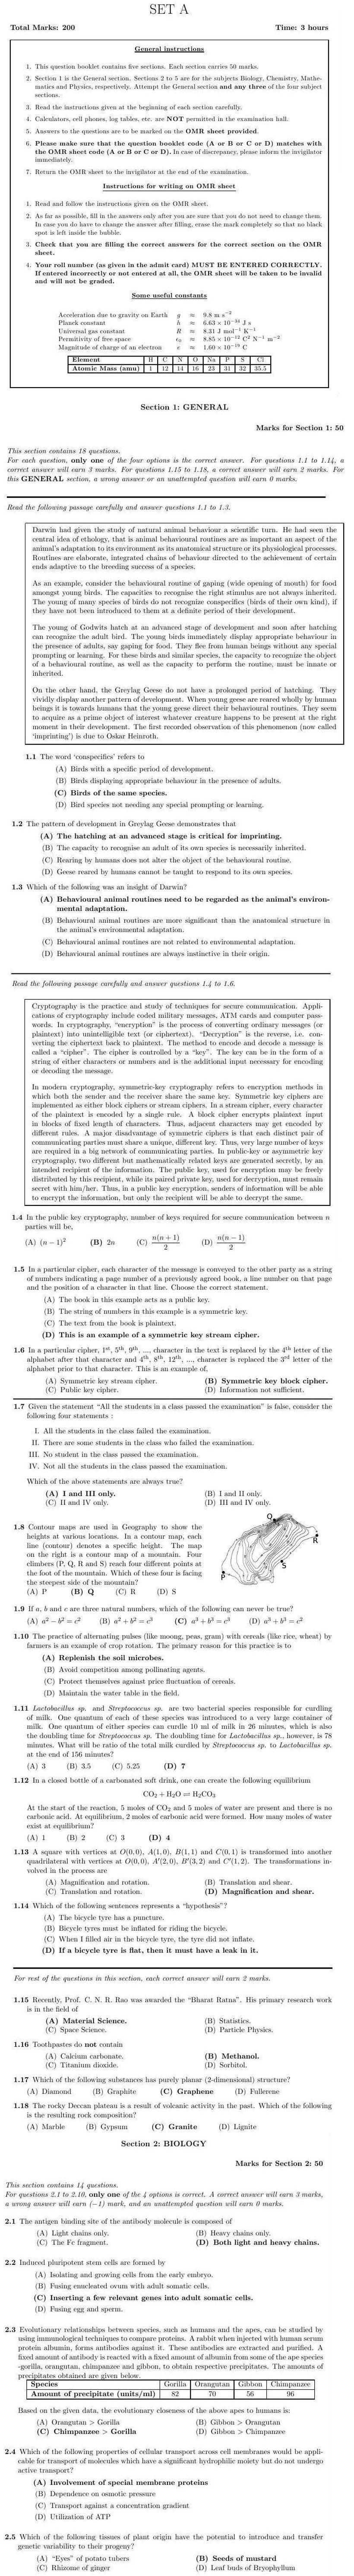 NEST 2013 Question Papers with Answers - SET A